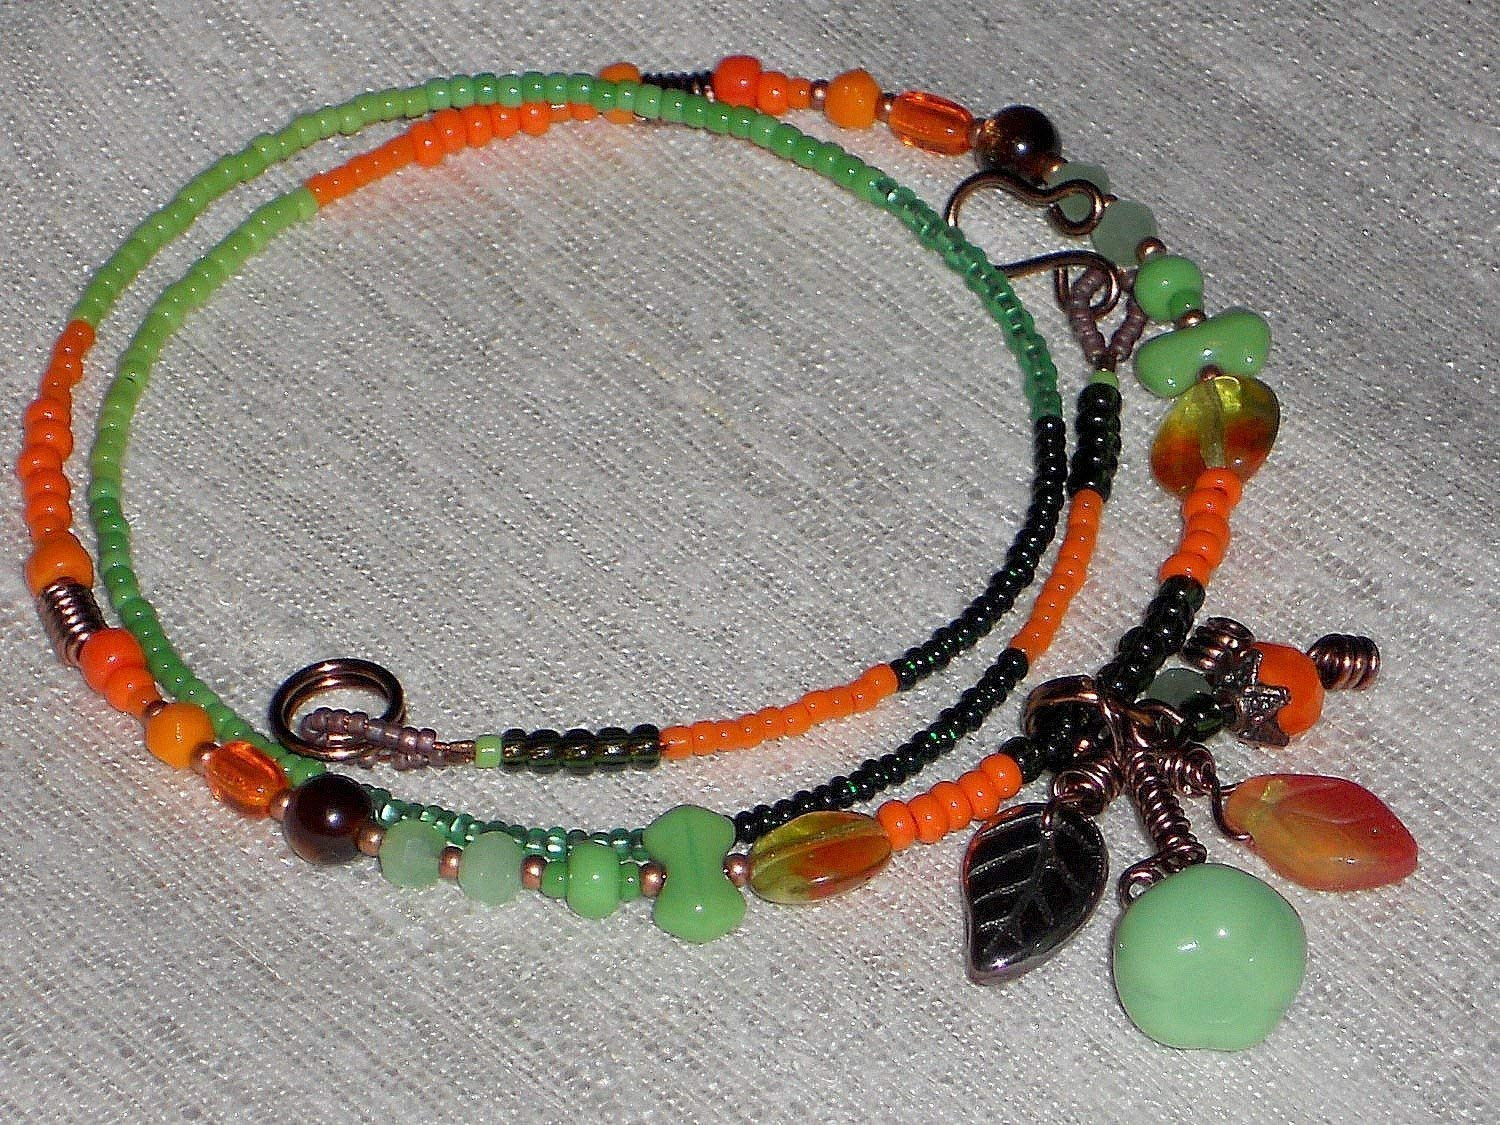 Apple Green Pumpkin Pendant Seed Bead Necklace or Wrap Bracelet